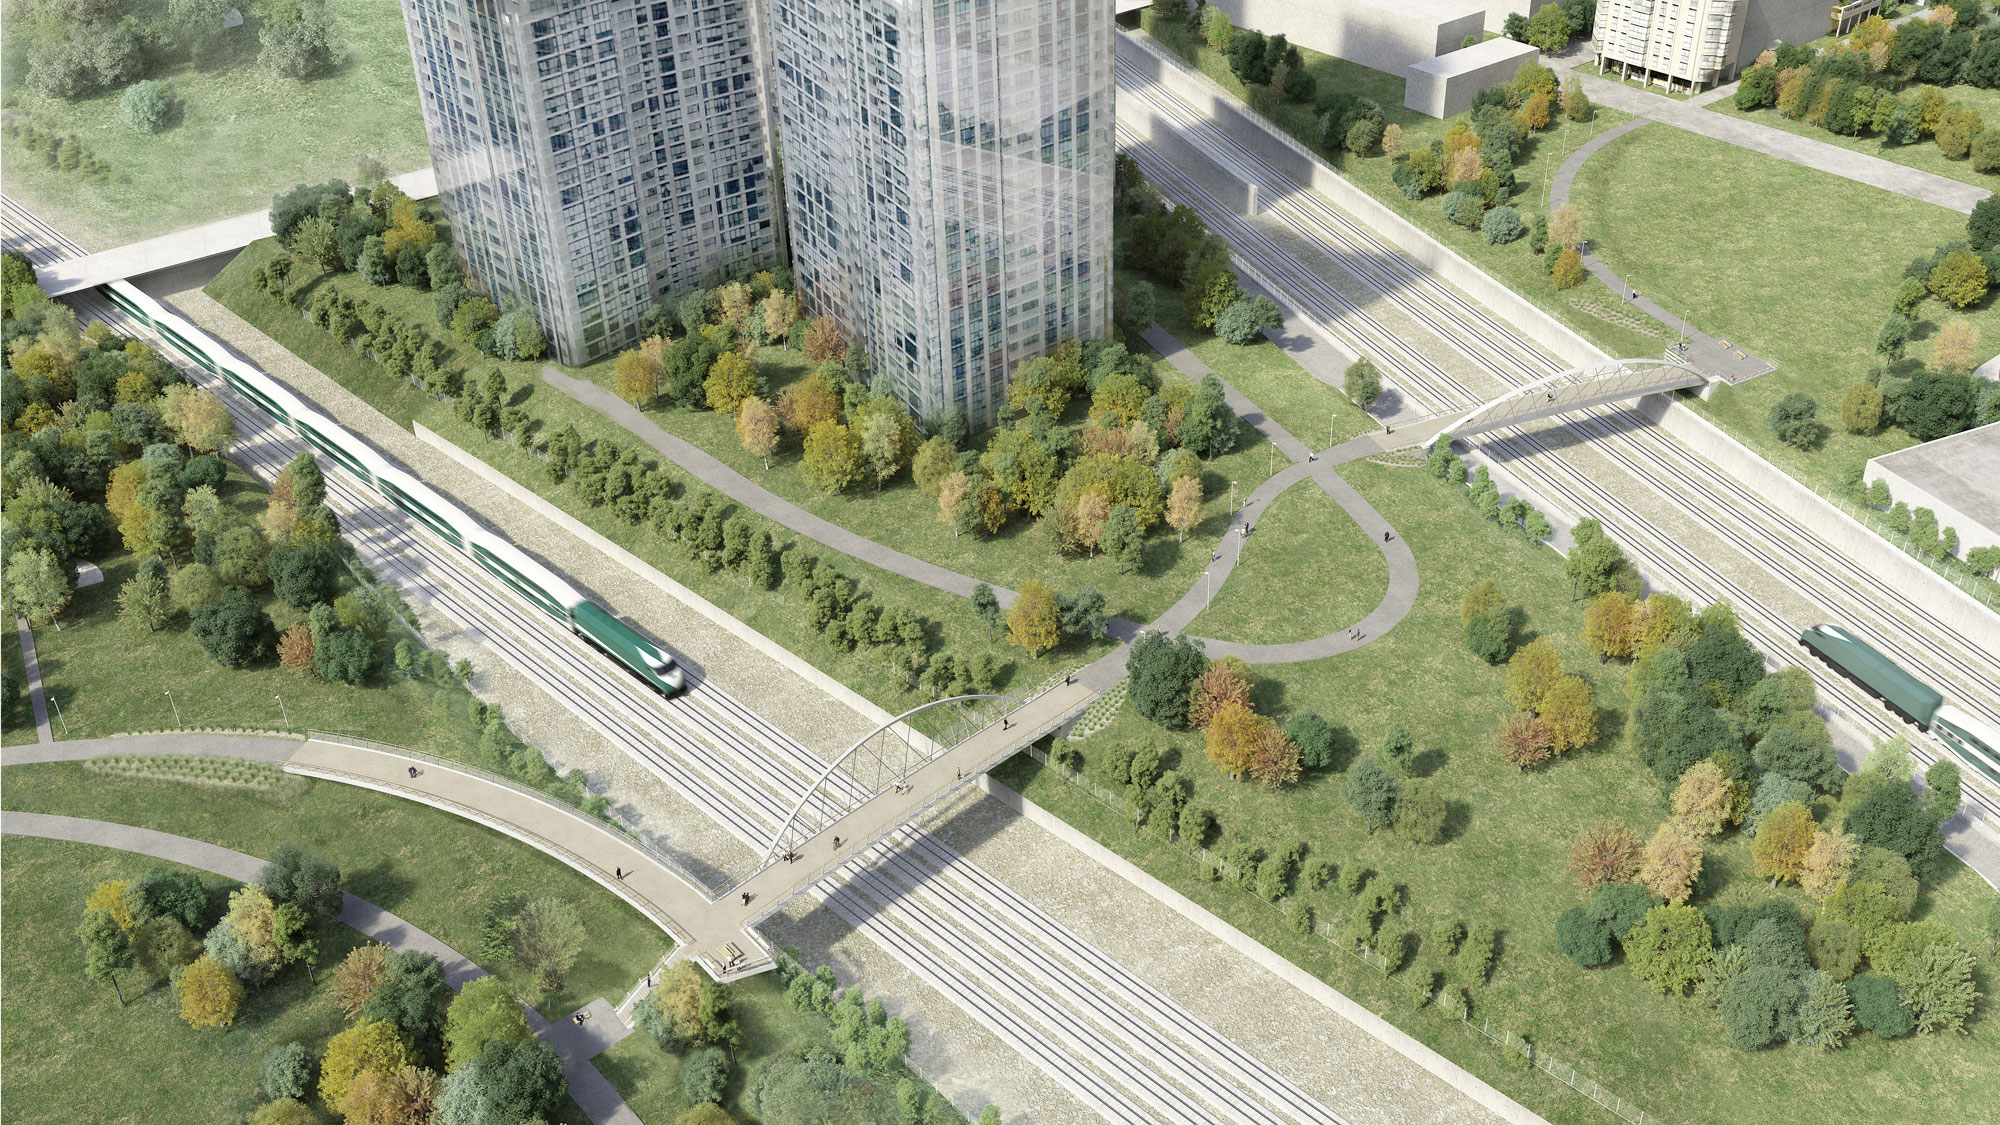 A bird's eye view of the Fort York pedestrian and bicycle bridge from the southeast. BUILD TORONTO.